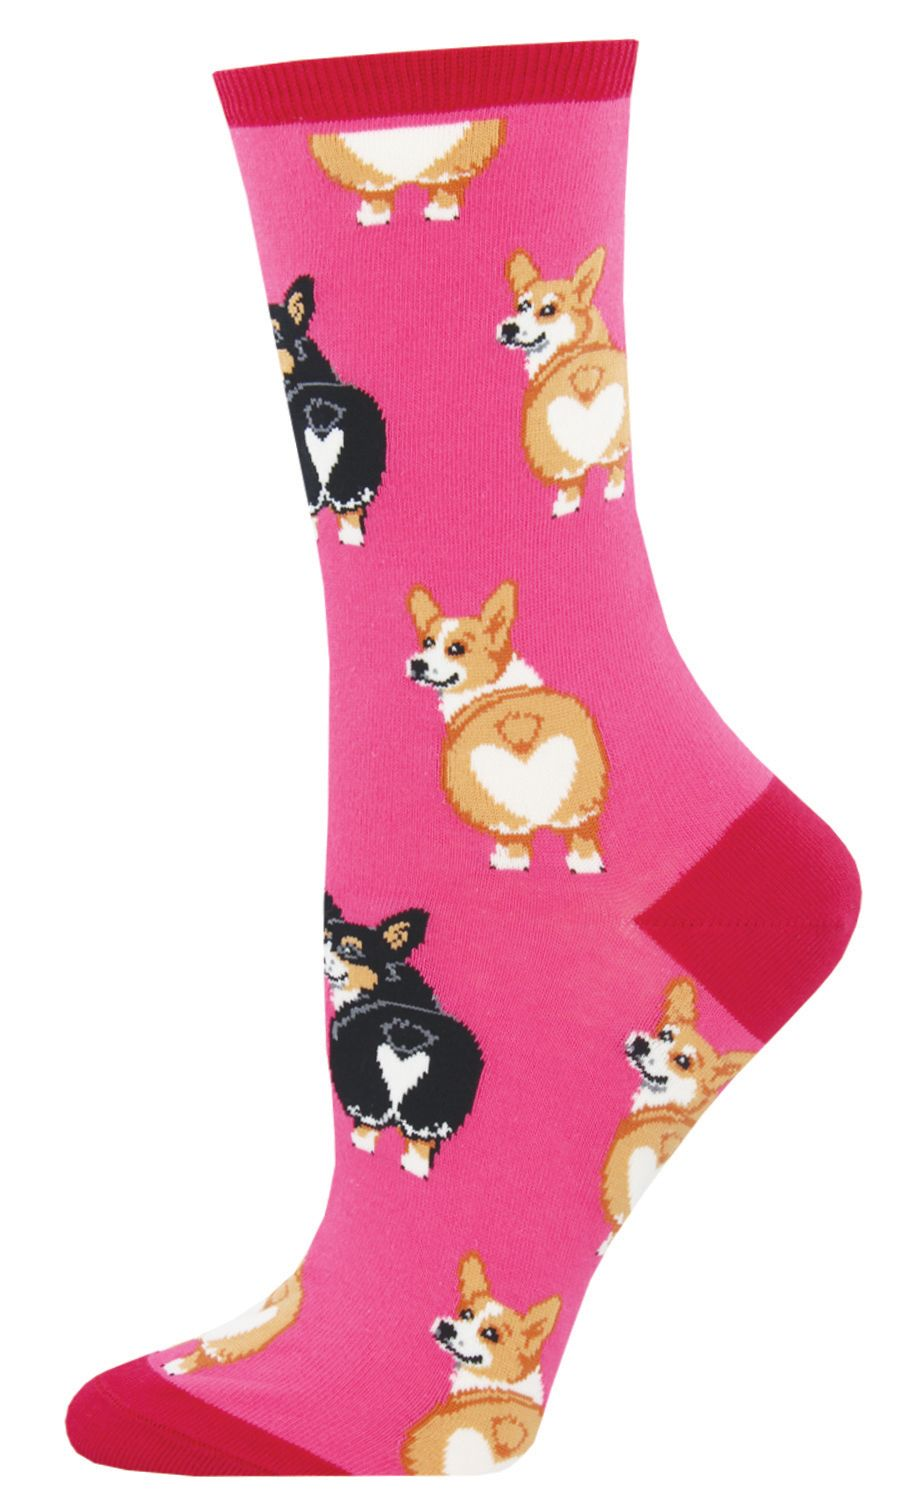 Socksmith Womens Crew Socks Corgi Dog Cotton Blend Black Novelty Footwear New